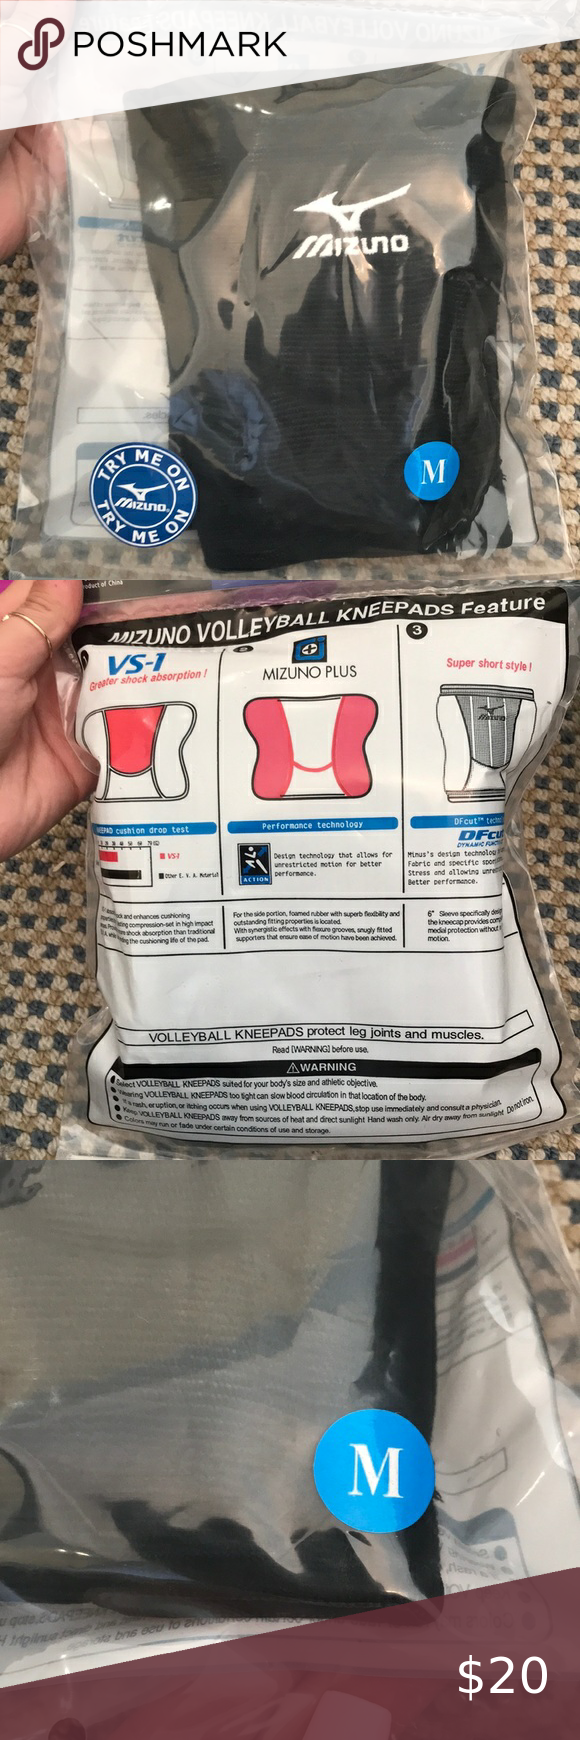 Mizuno Lr6 Volleyball Kneepads New In 2020 Original Bags Mizuno Volleyball